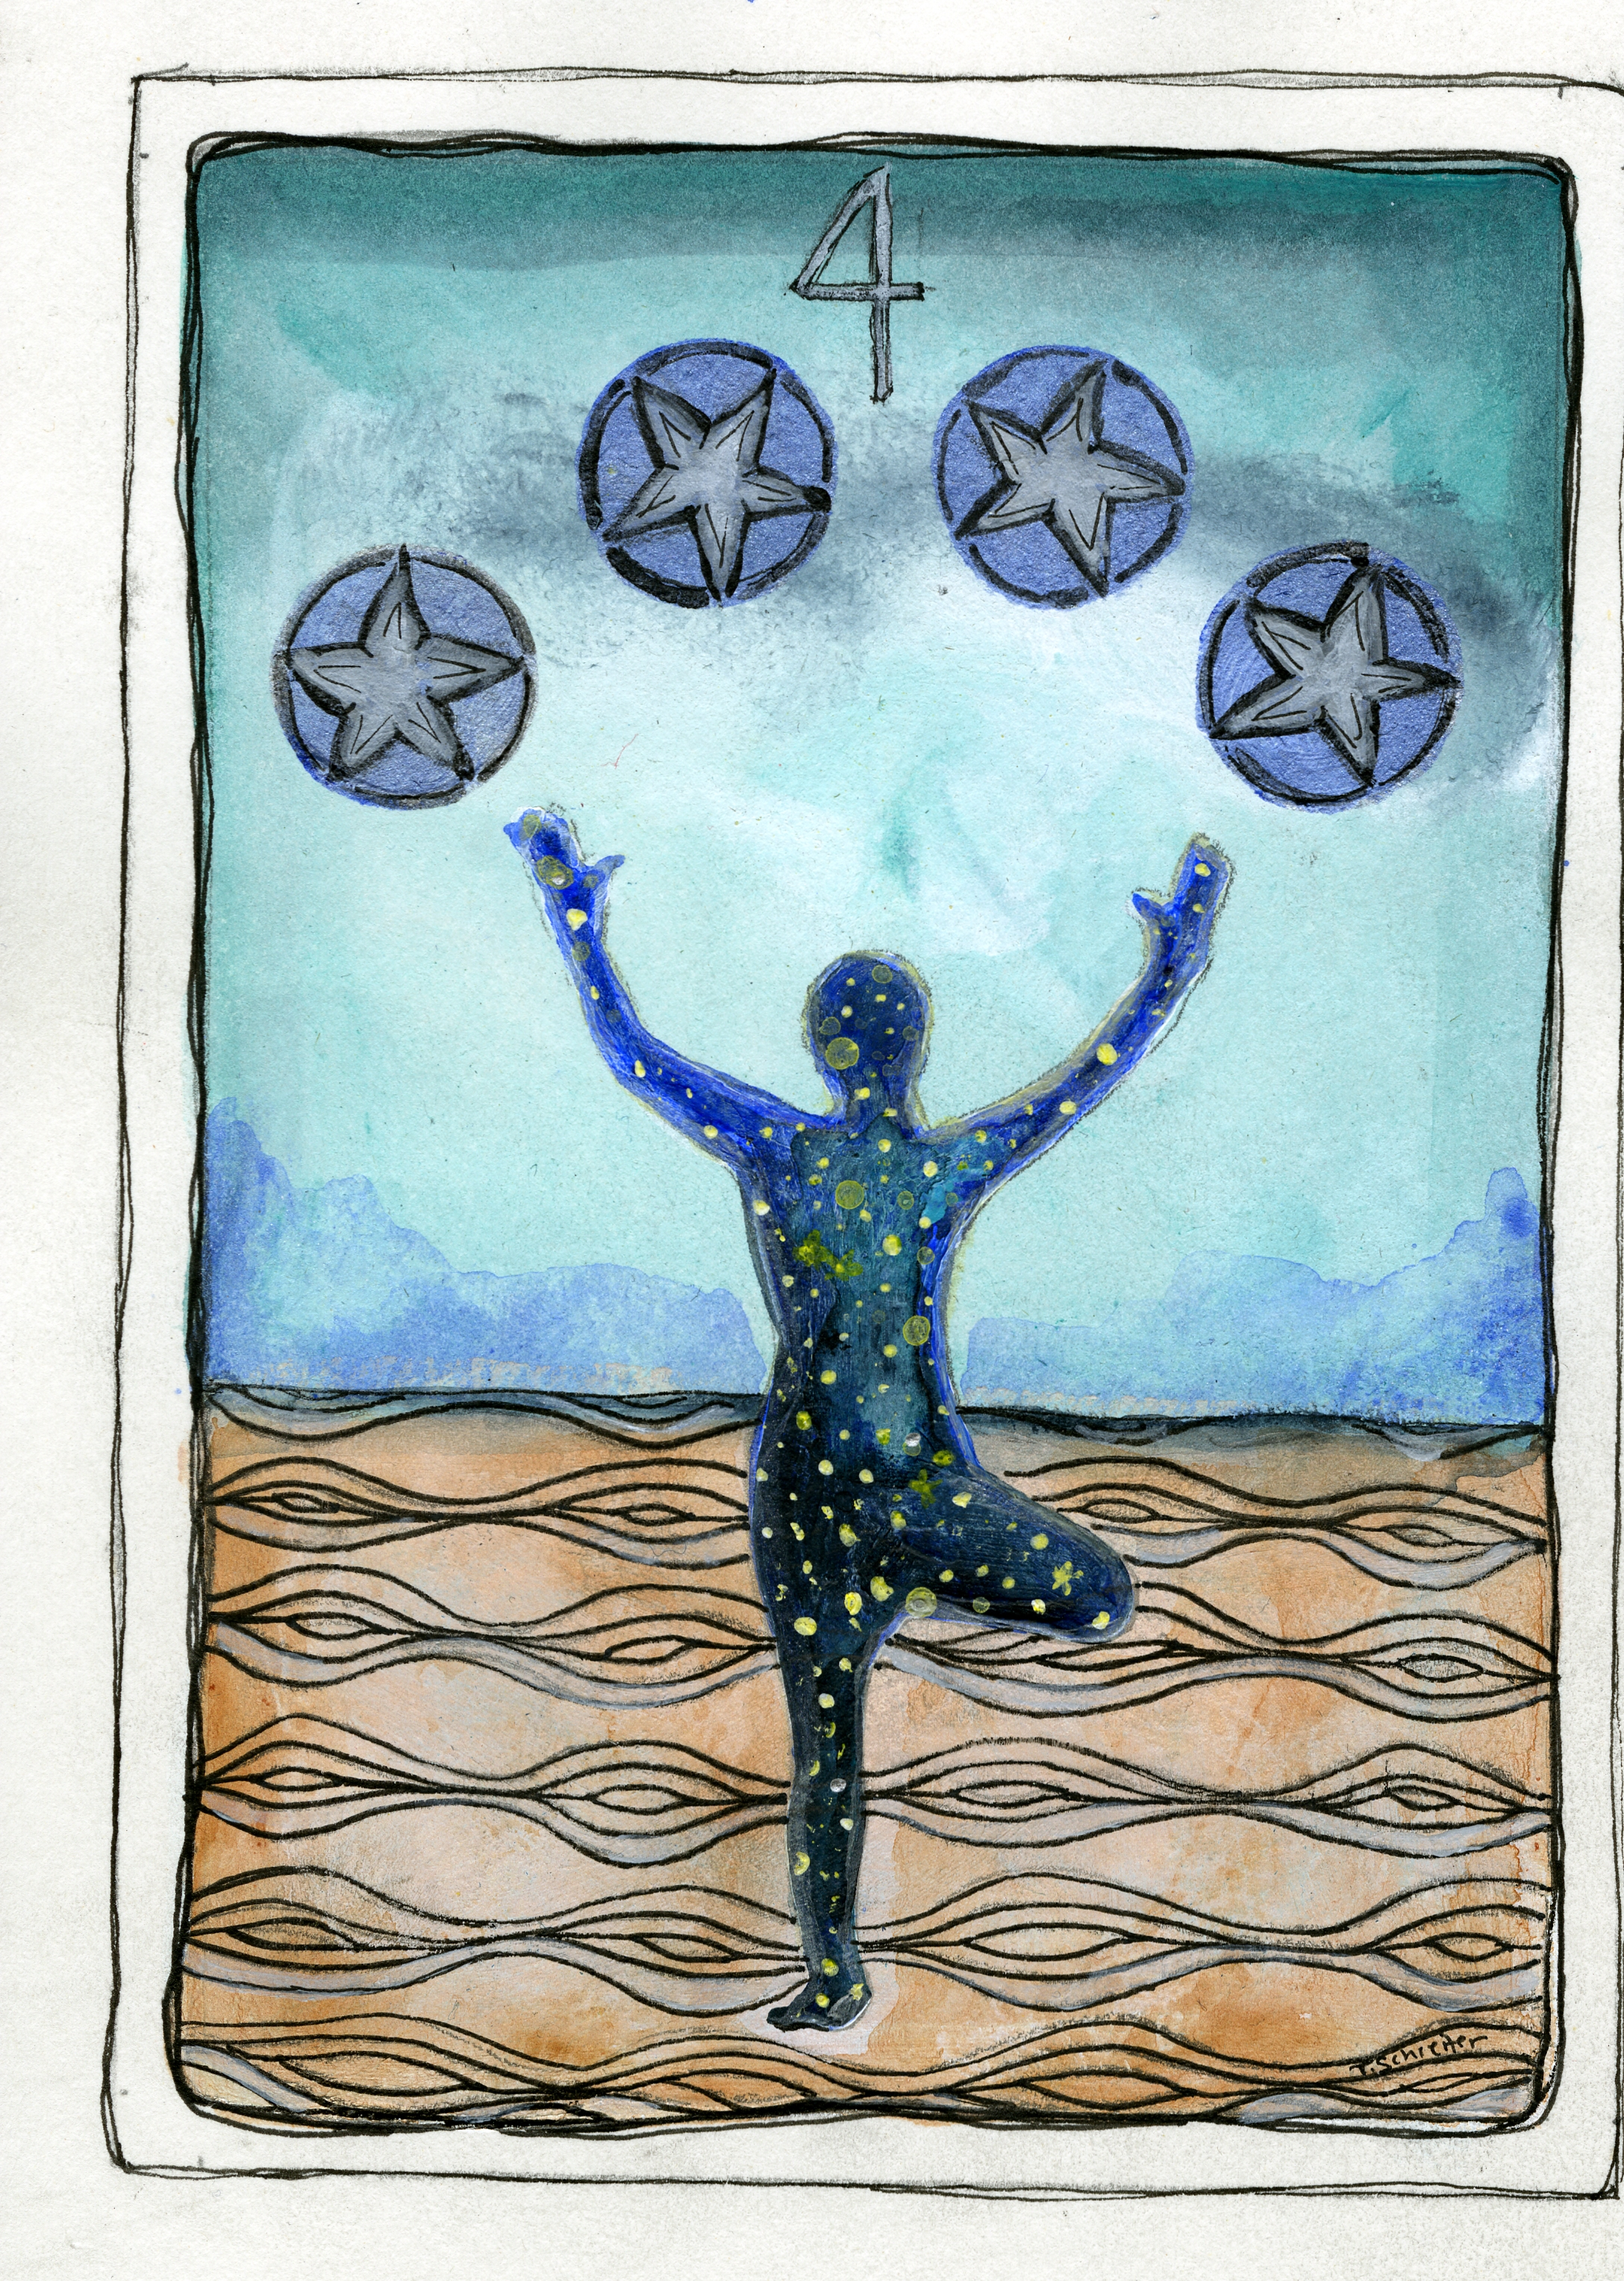 Bubbler Tarot The Bubbler Madison Public Library From the previous cards in the suit of cups, you have already learned that emotion is the arthur e. bubbler tarot the bubbler madison